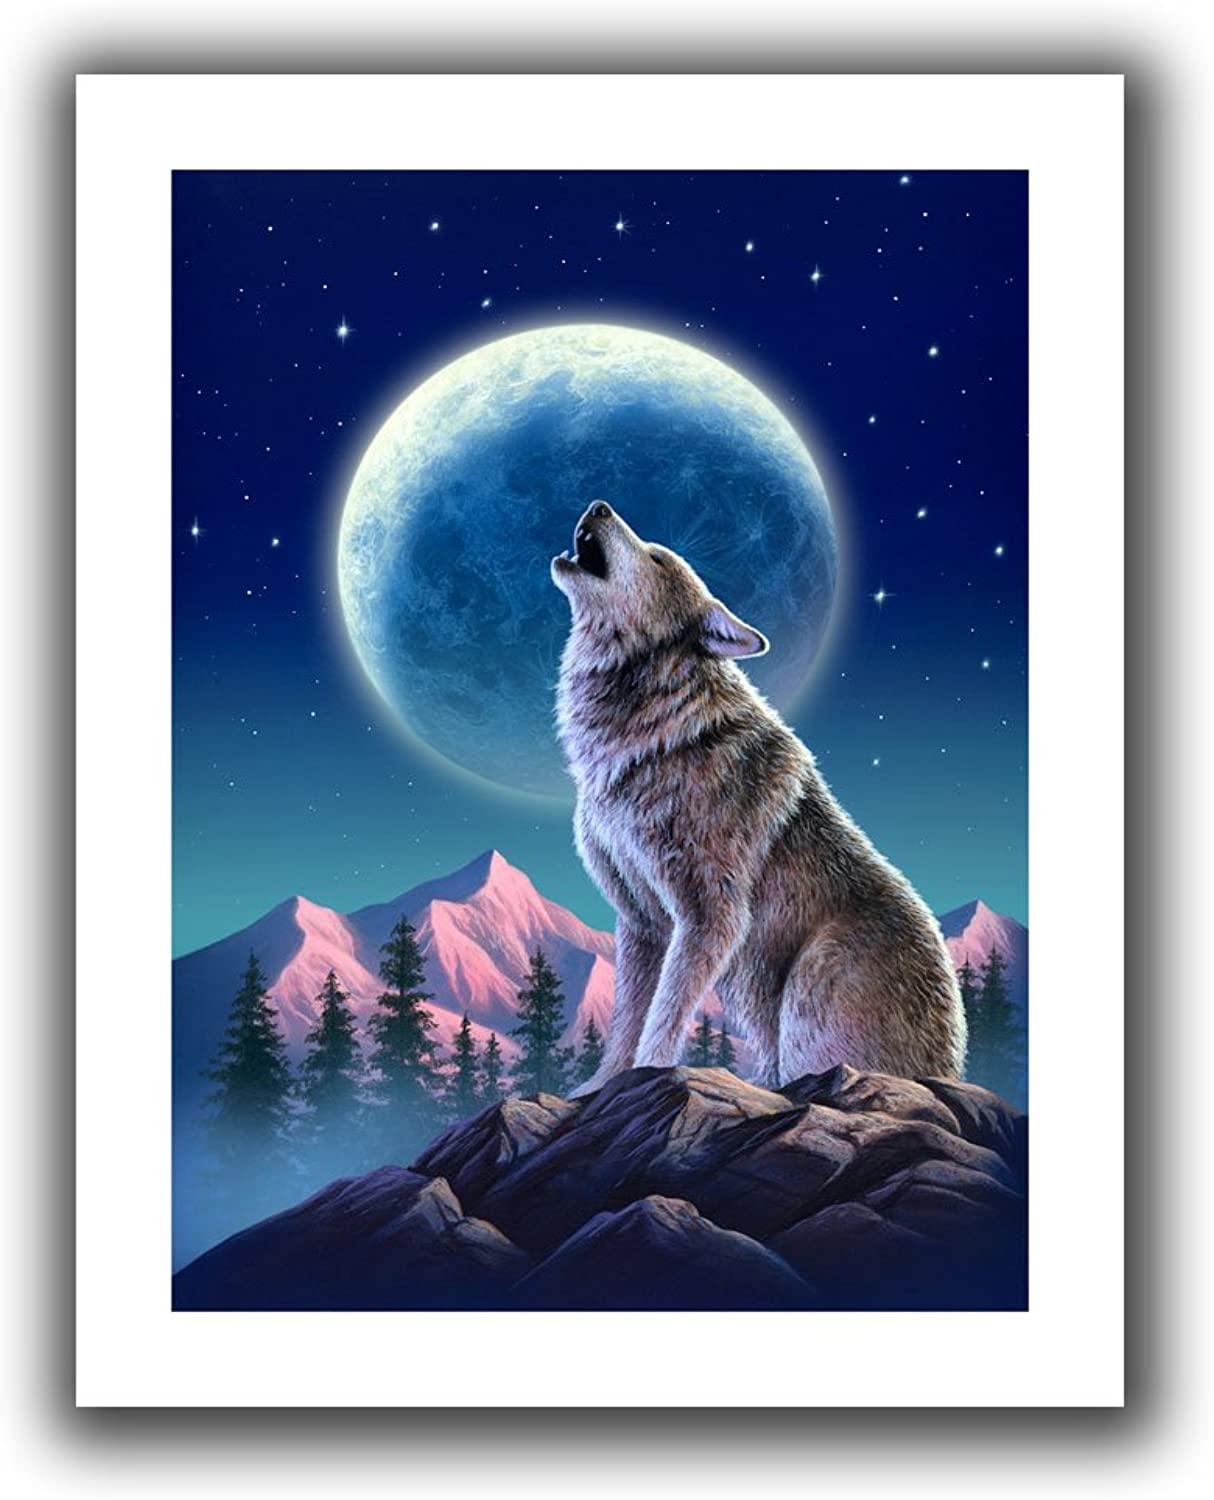 Art Wall Jerry Lofaro 'Wolf Moon' Unwrapped Flat Canvas Artwork, 28 by 36Inch